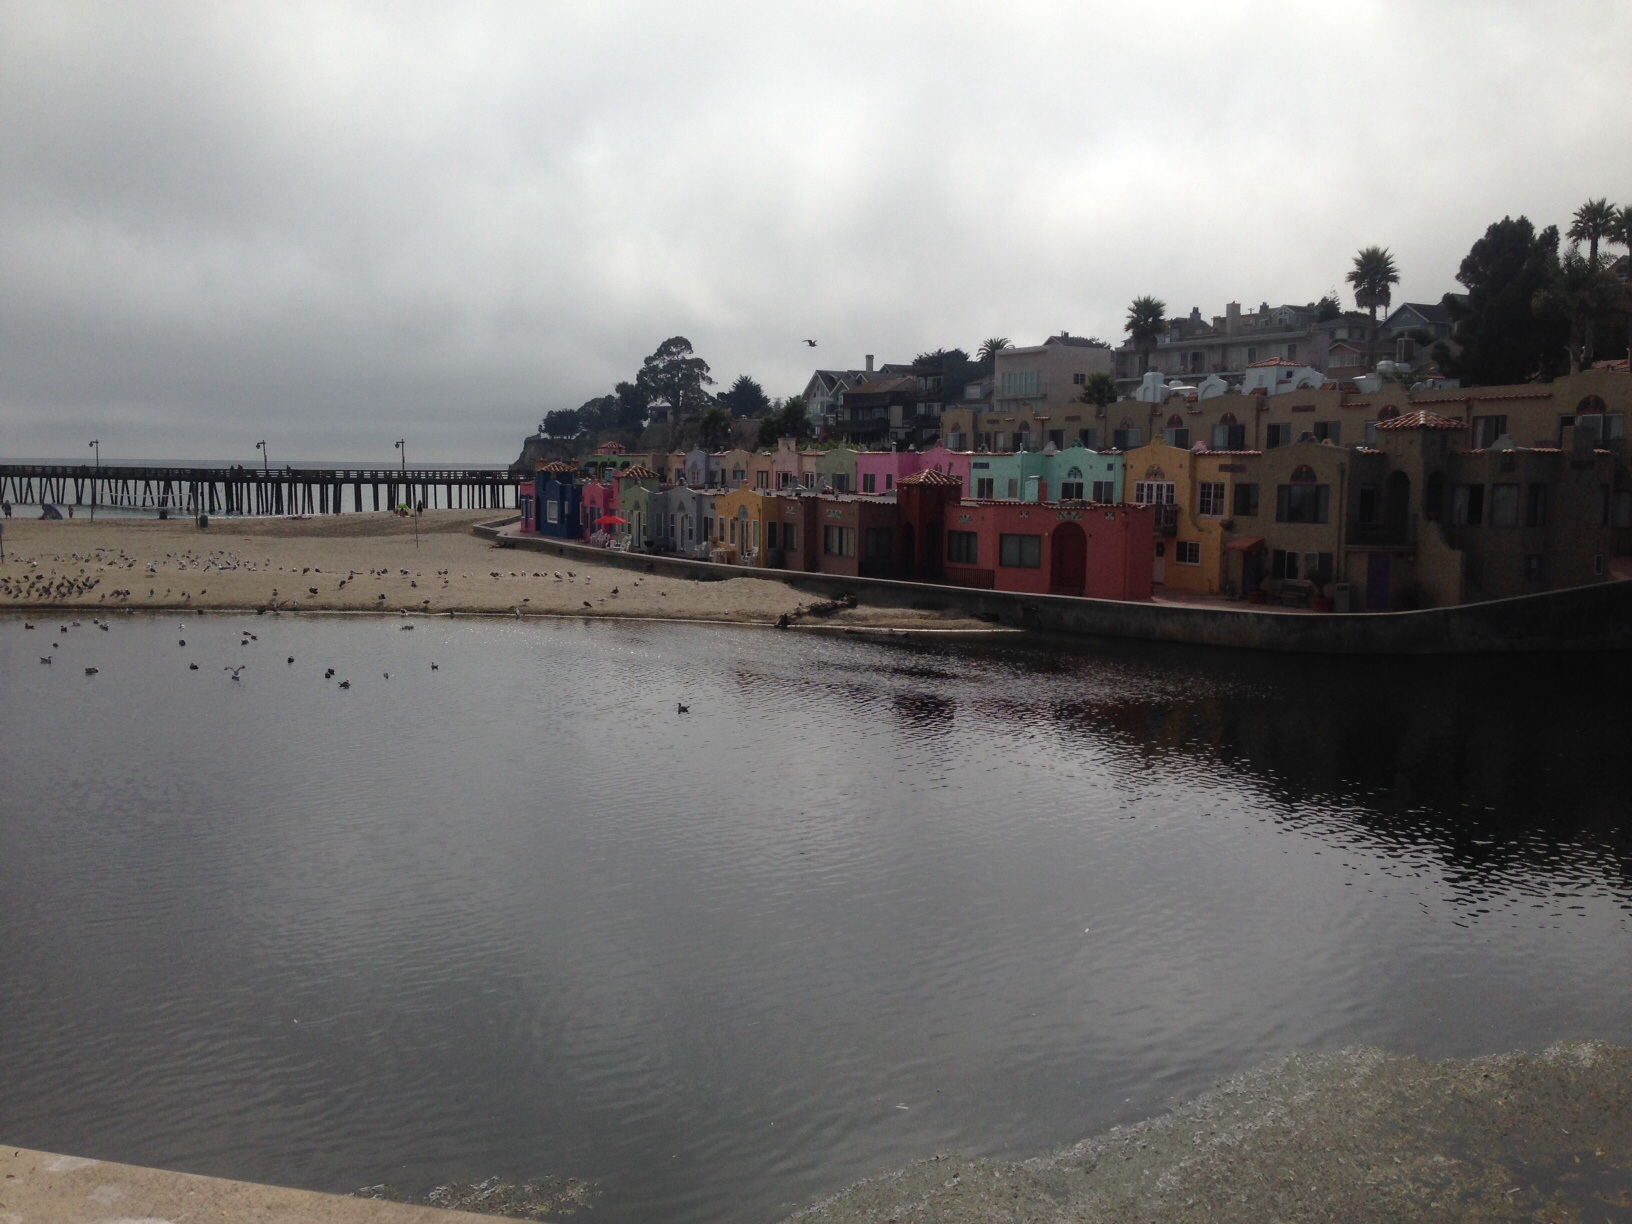 The Capitola Venetian Hotel and Cottages